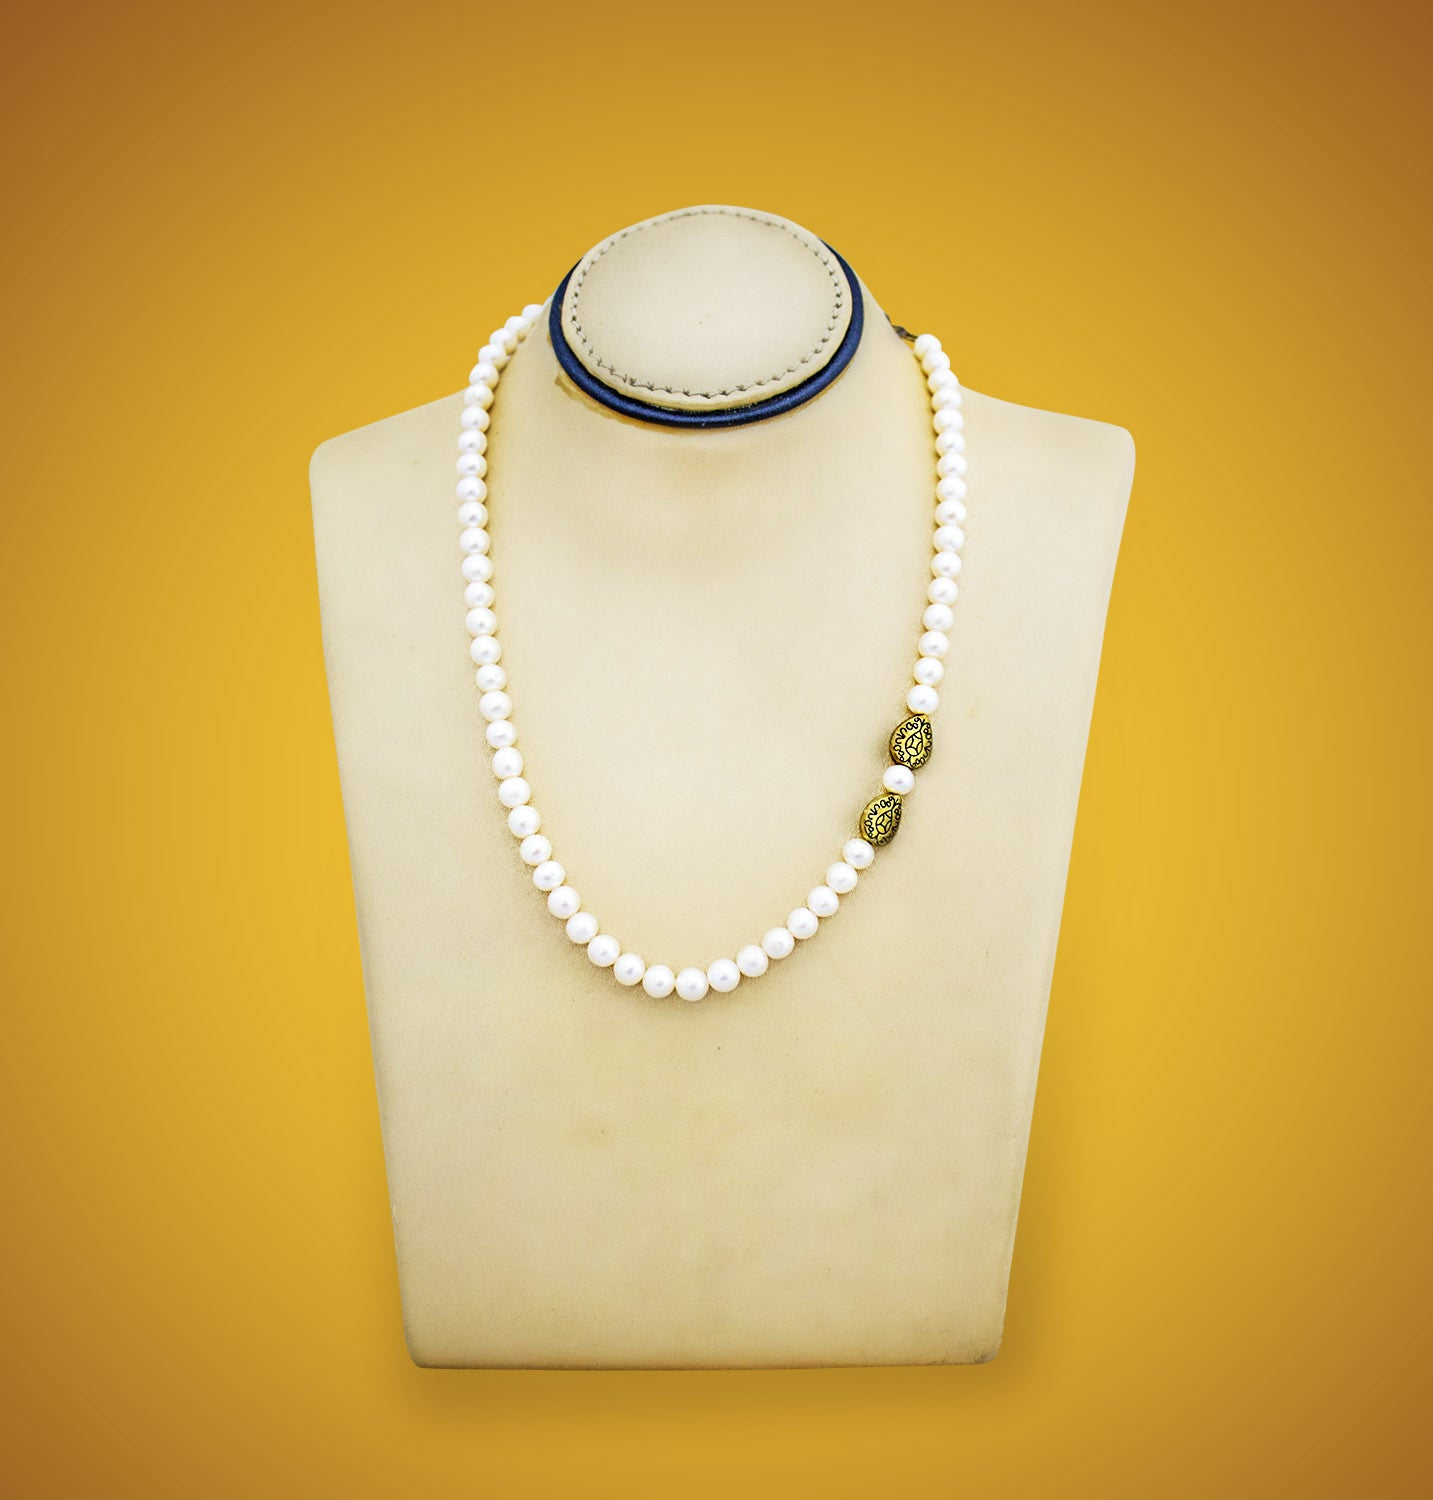 Freshwater pearl side pendant necklace devotionalstore freshwater pearl side pendant necklace mozeypictures Images